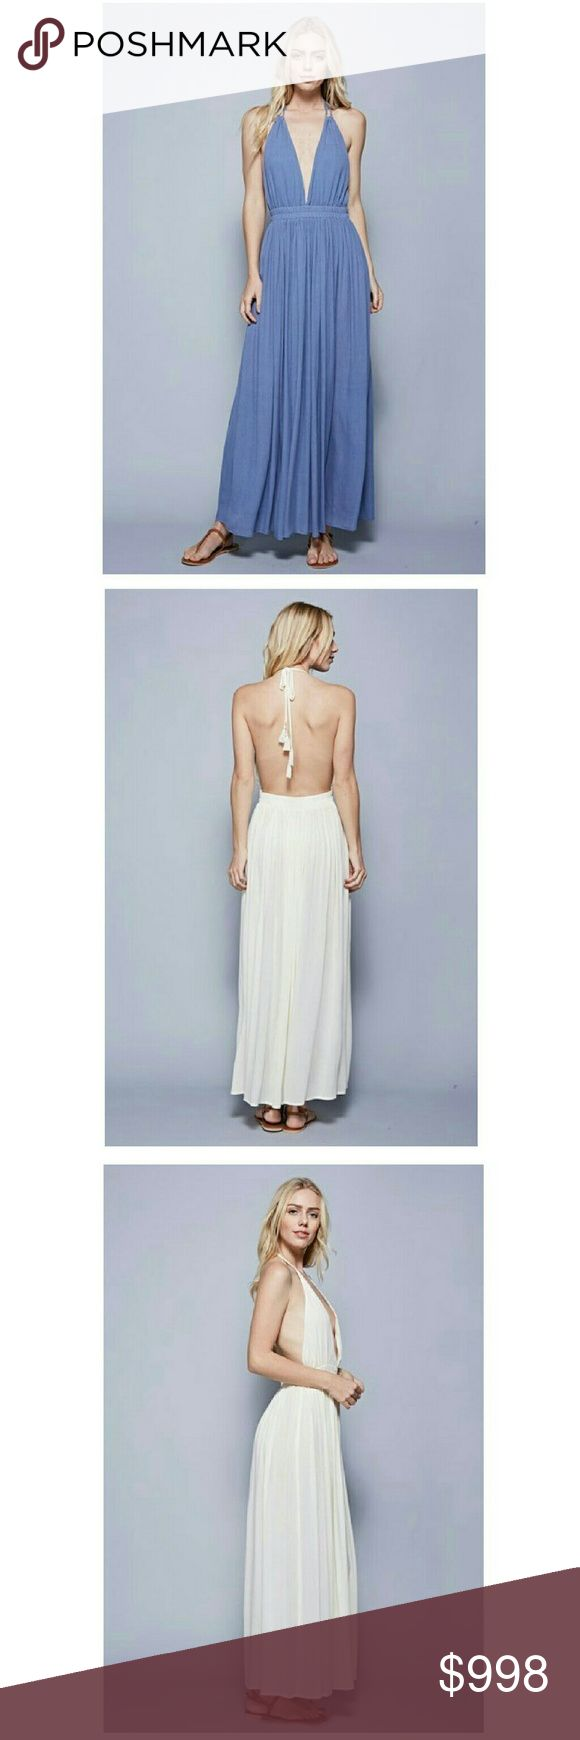 🆕 COMING SOON  Stone Wash Blue Boho Halter Maxi Stunning Bohemian Maxi Dress, light stone wash blue, summery beach wear, low cut halter front, open back, elastic fit waist.   100% Rayon  Also available in cream  Price will be approx  $55 PRICE IS FIRM UNLESS BUNDLED   Like this listing to be notified upon arrival Boutique  Dresses Maxi